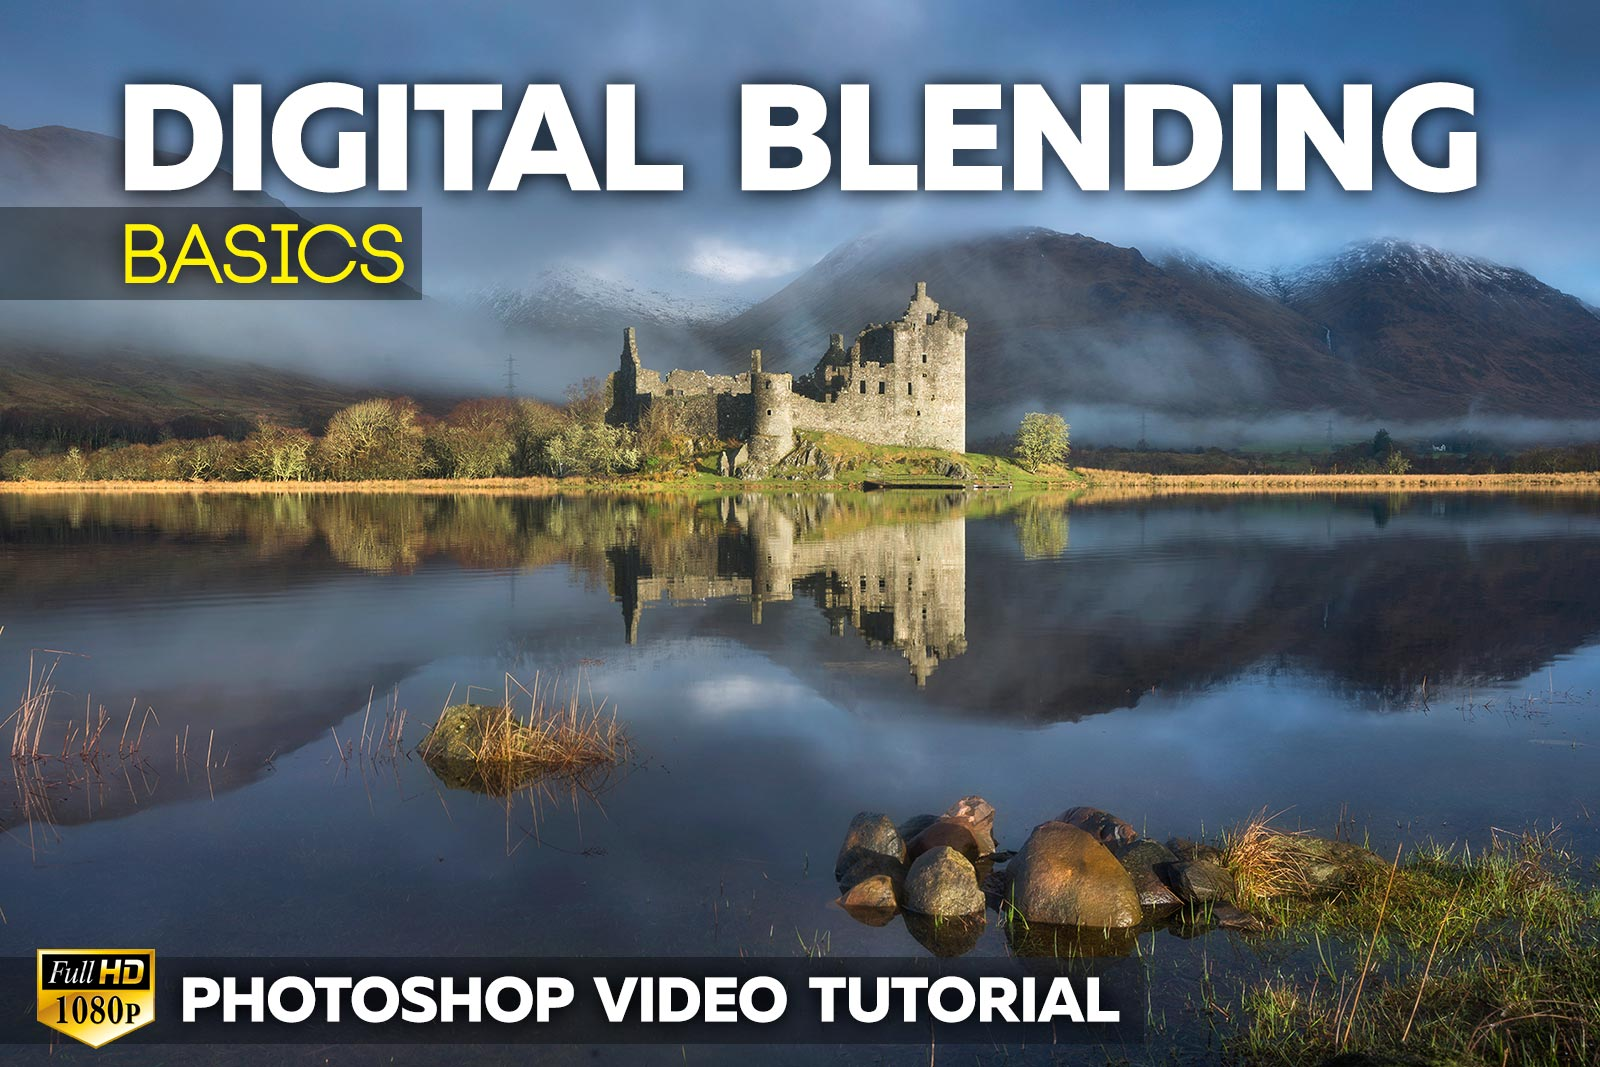 Digital Blending Basics